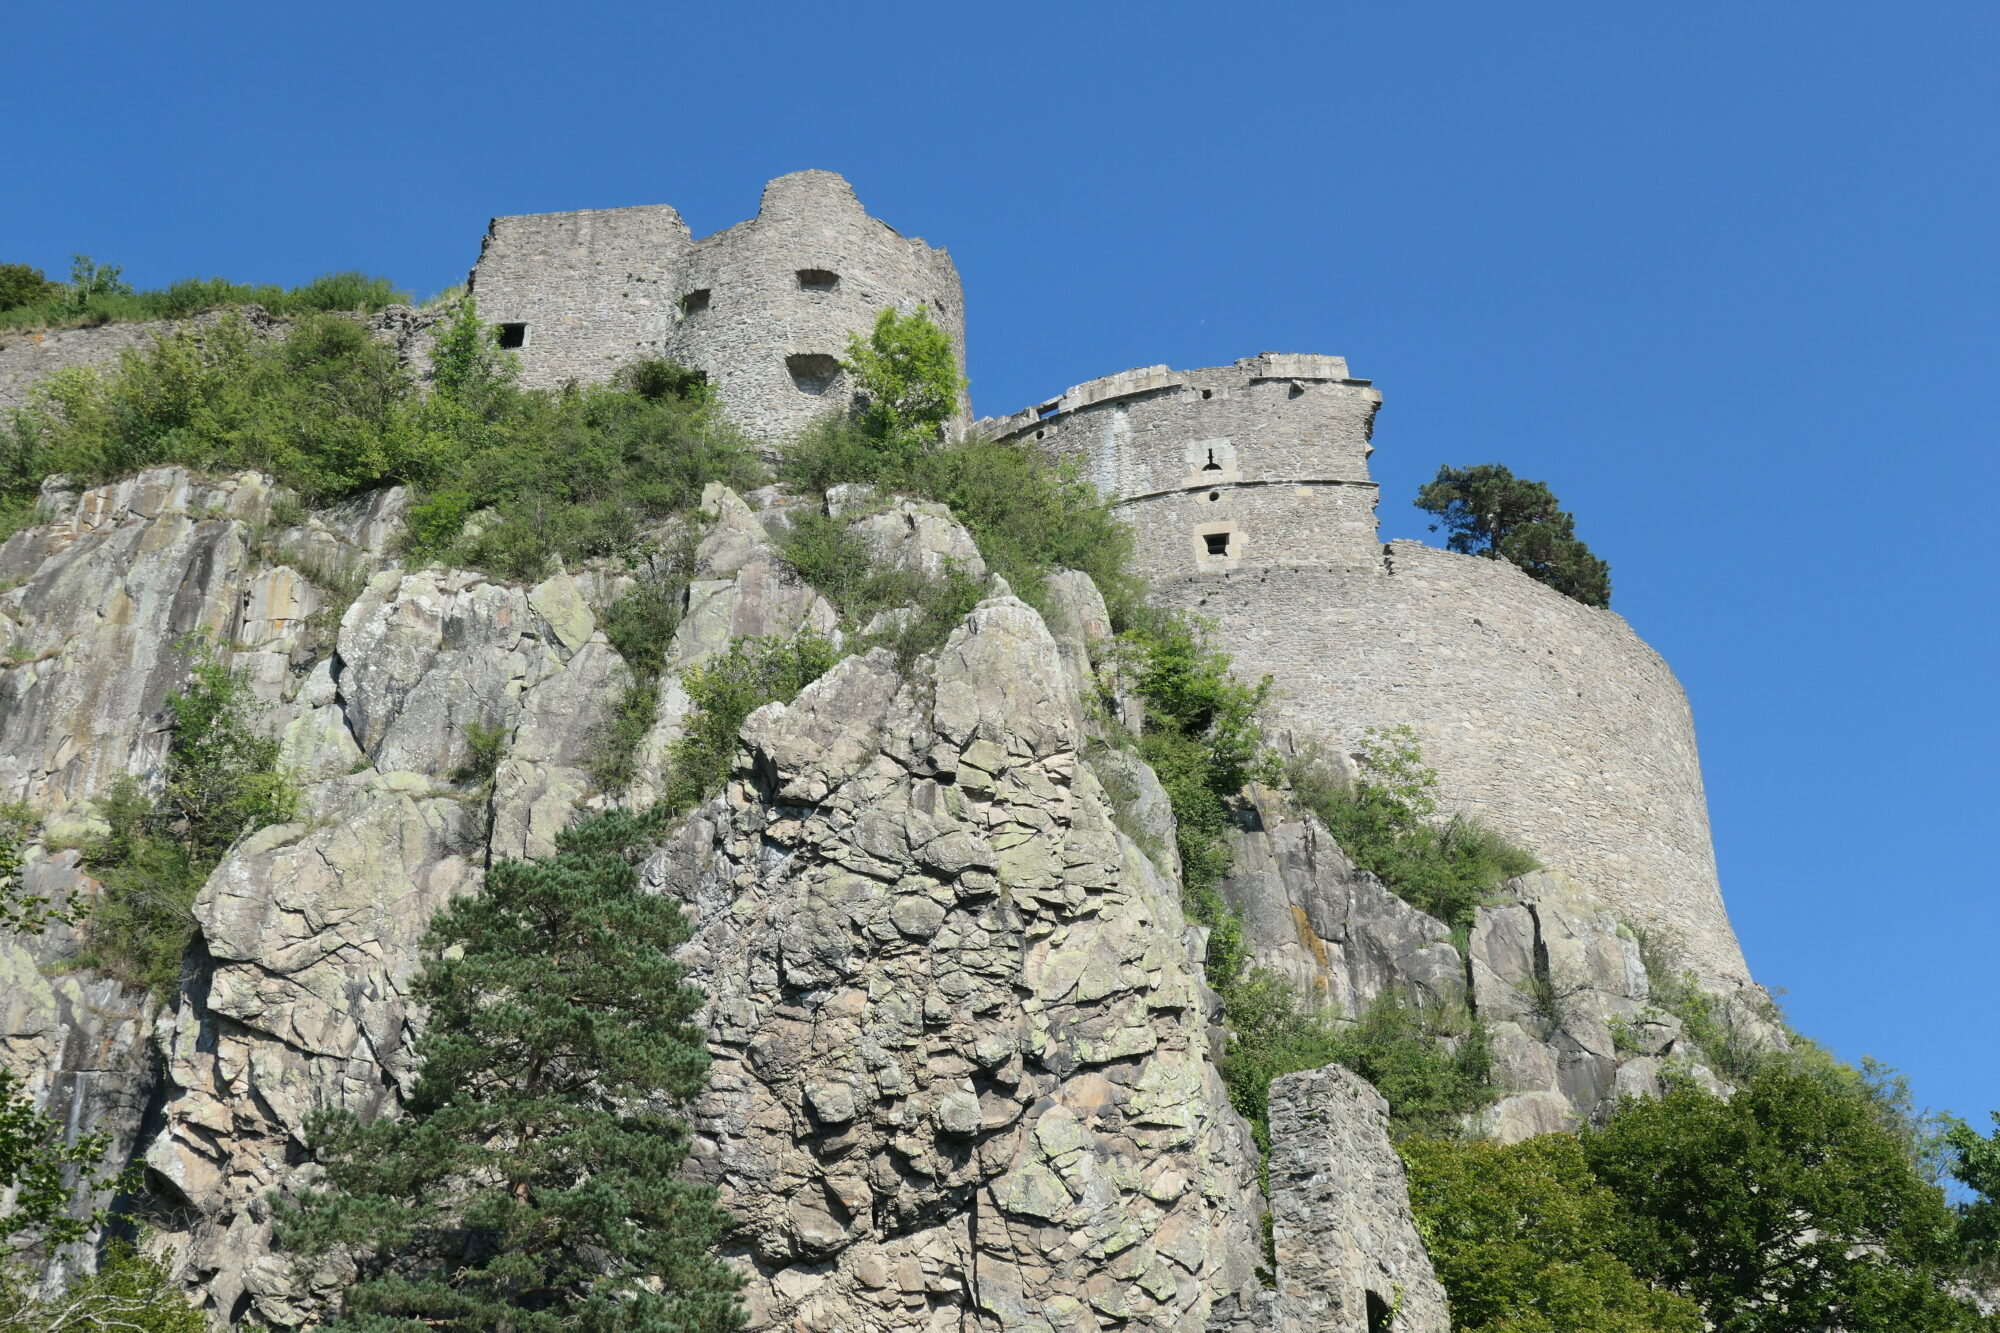 The massive ruins of castle hohentwiel